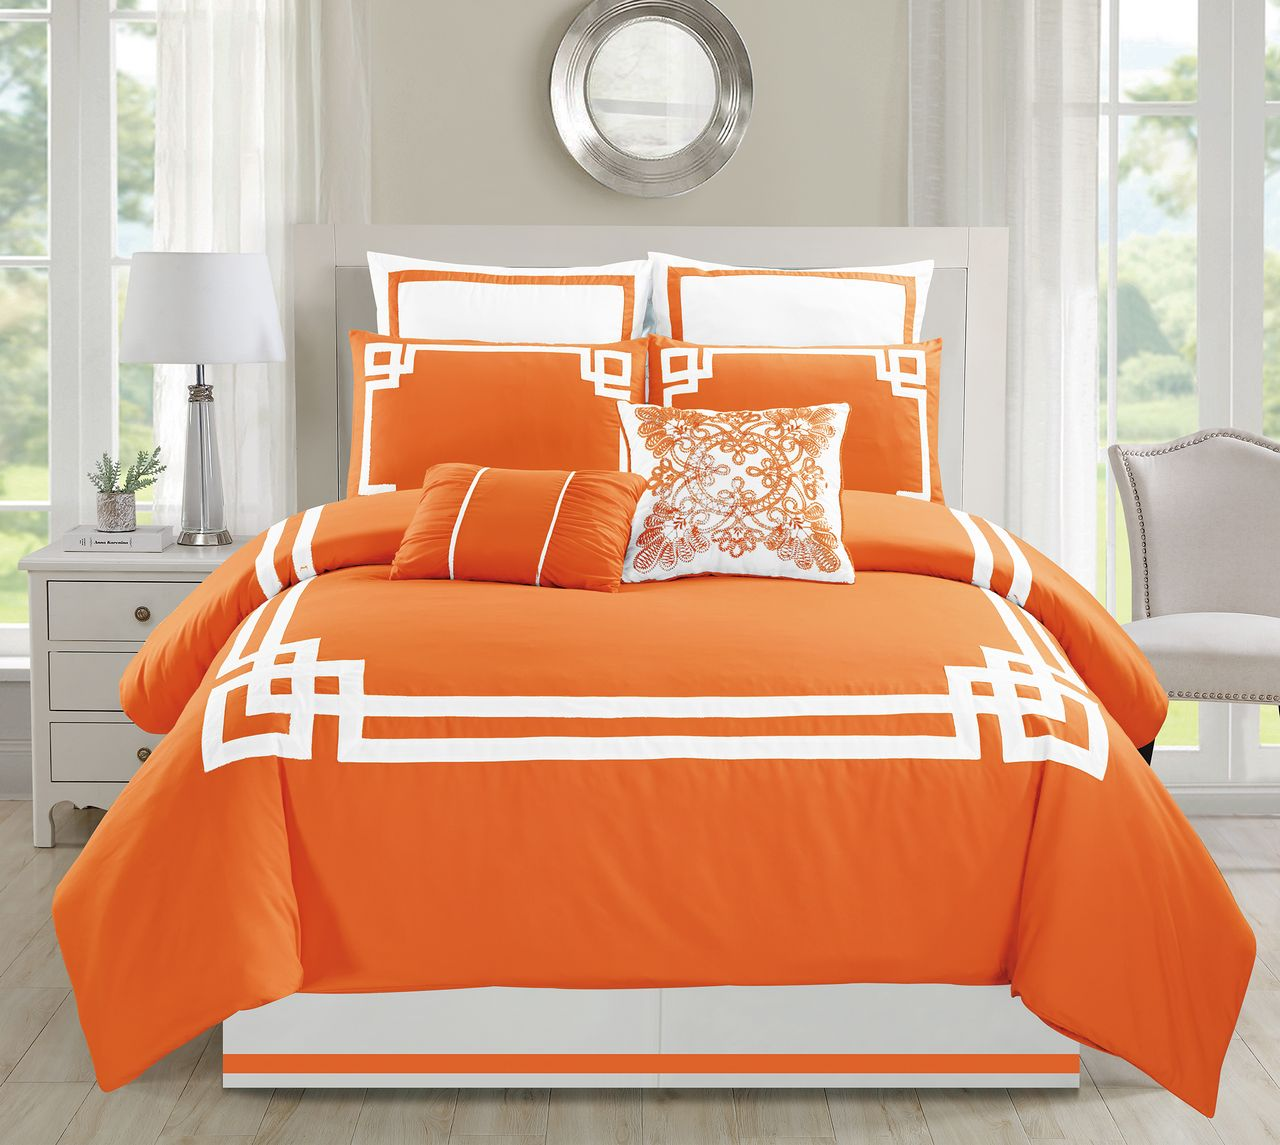 8 Piece Lucca Orange Comforter Set